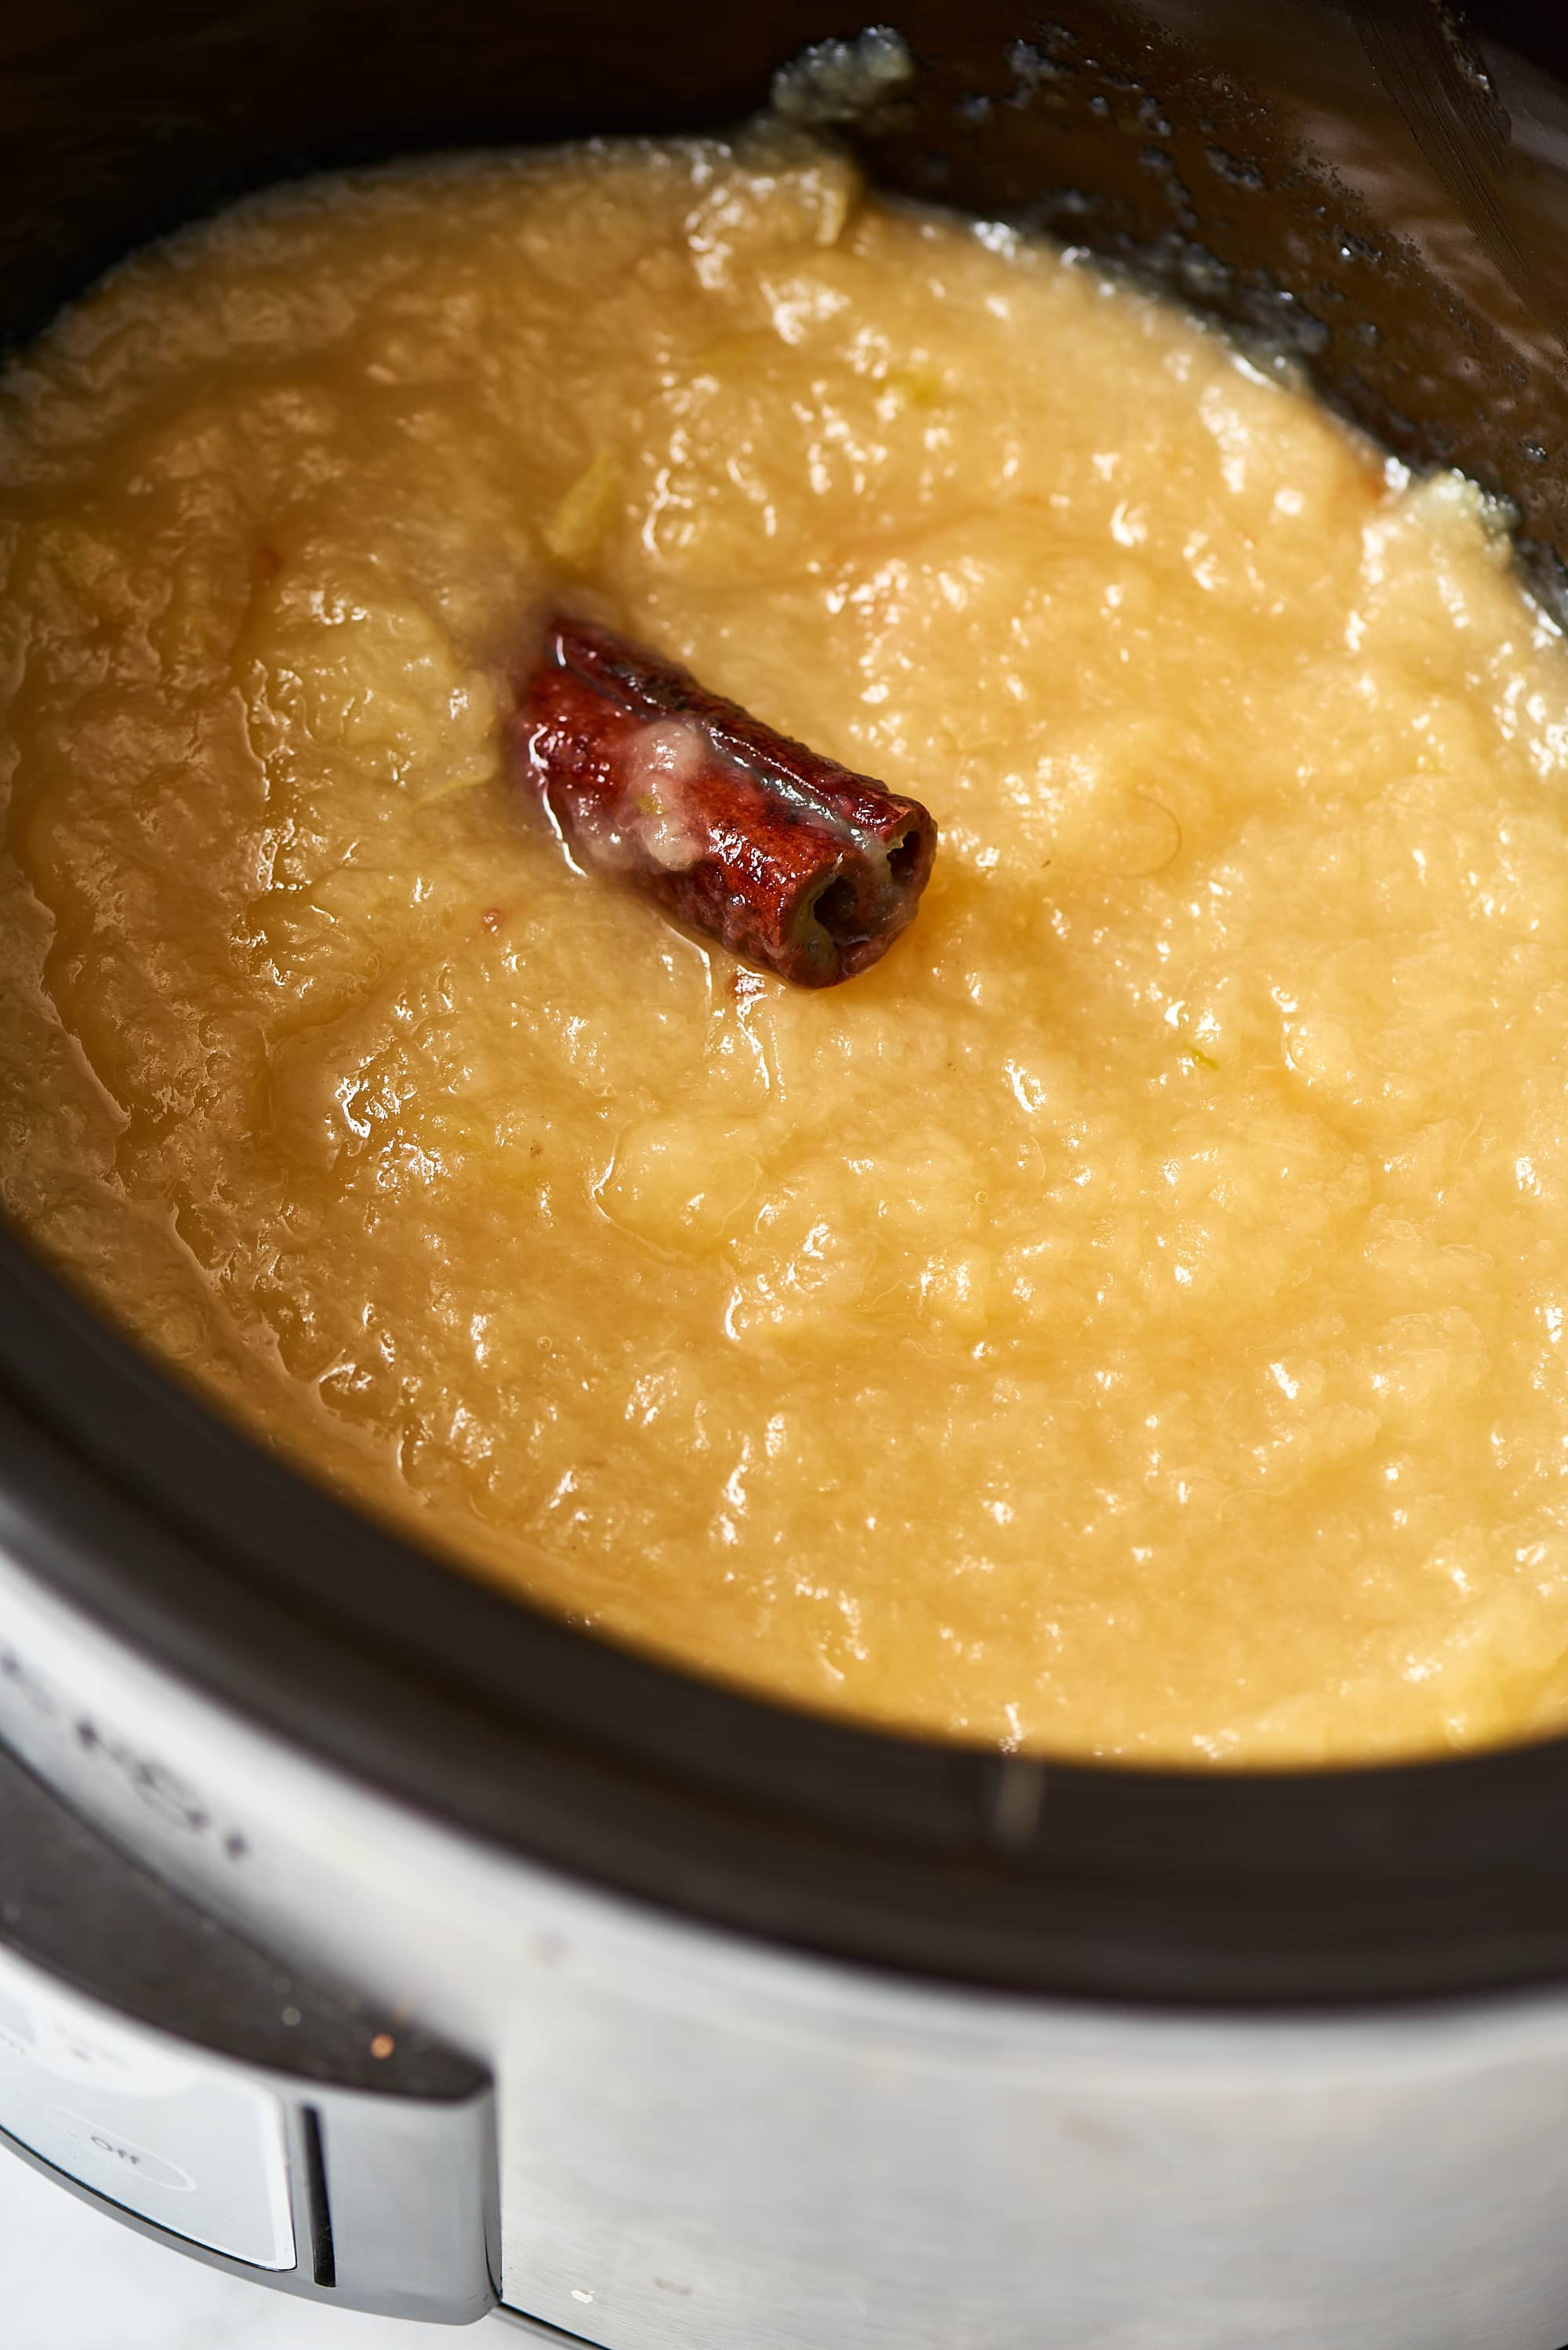 How To Make Applesauce in the Slow Cooker